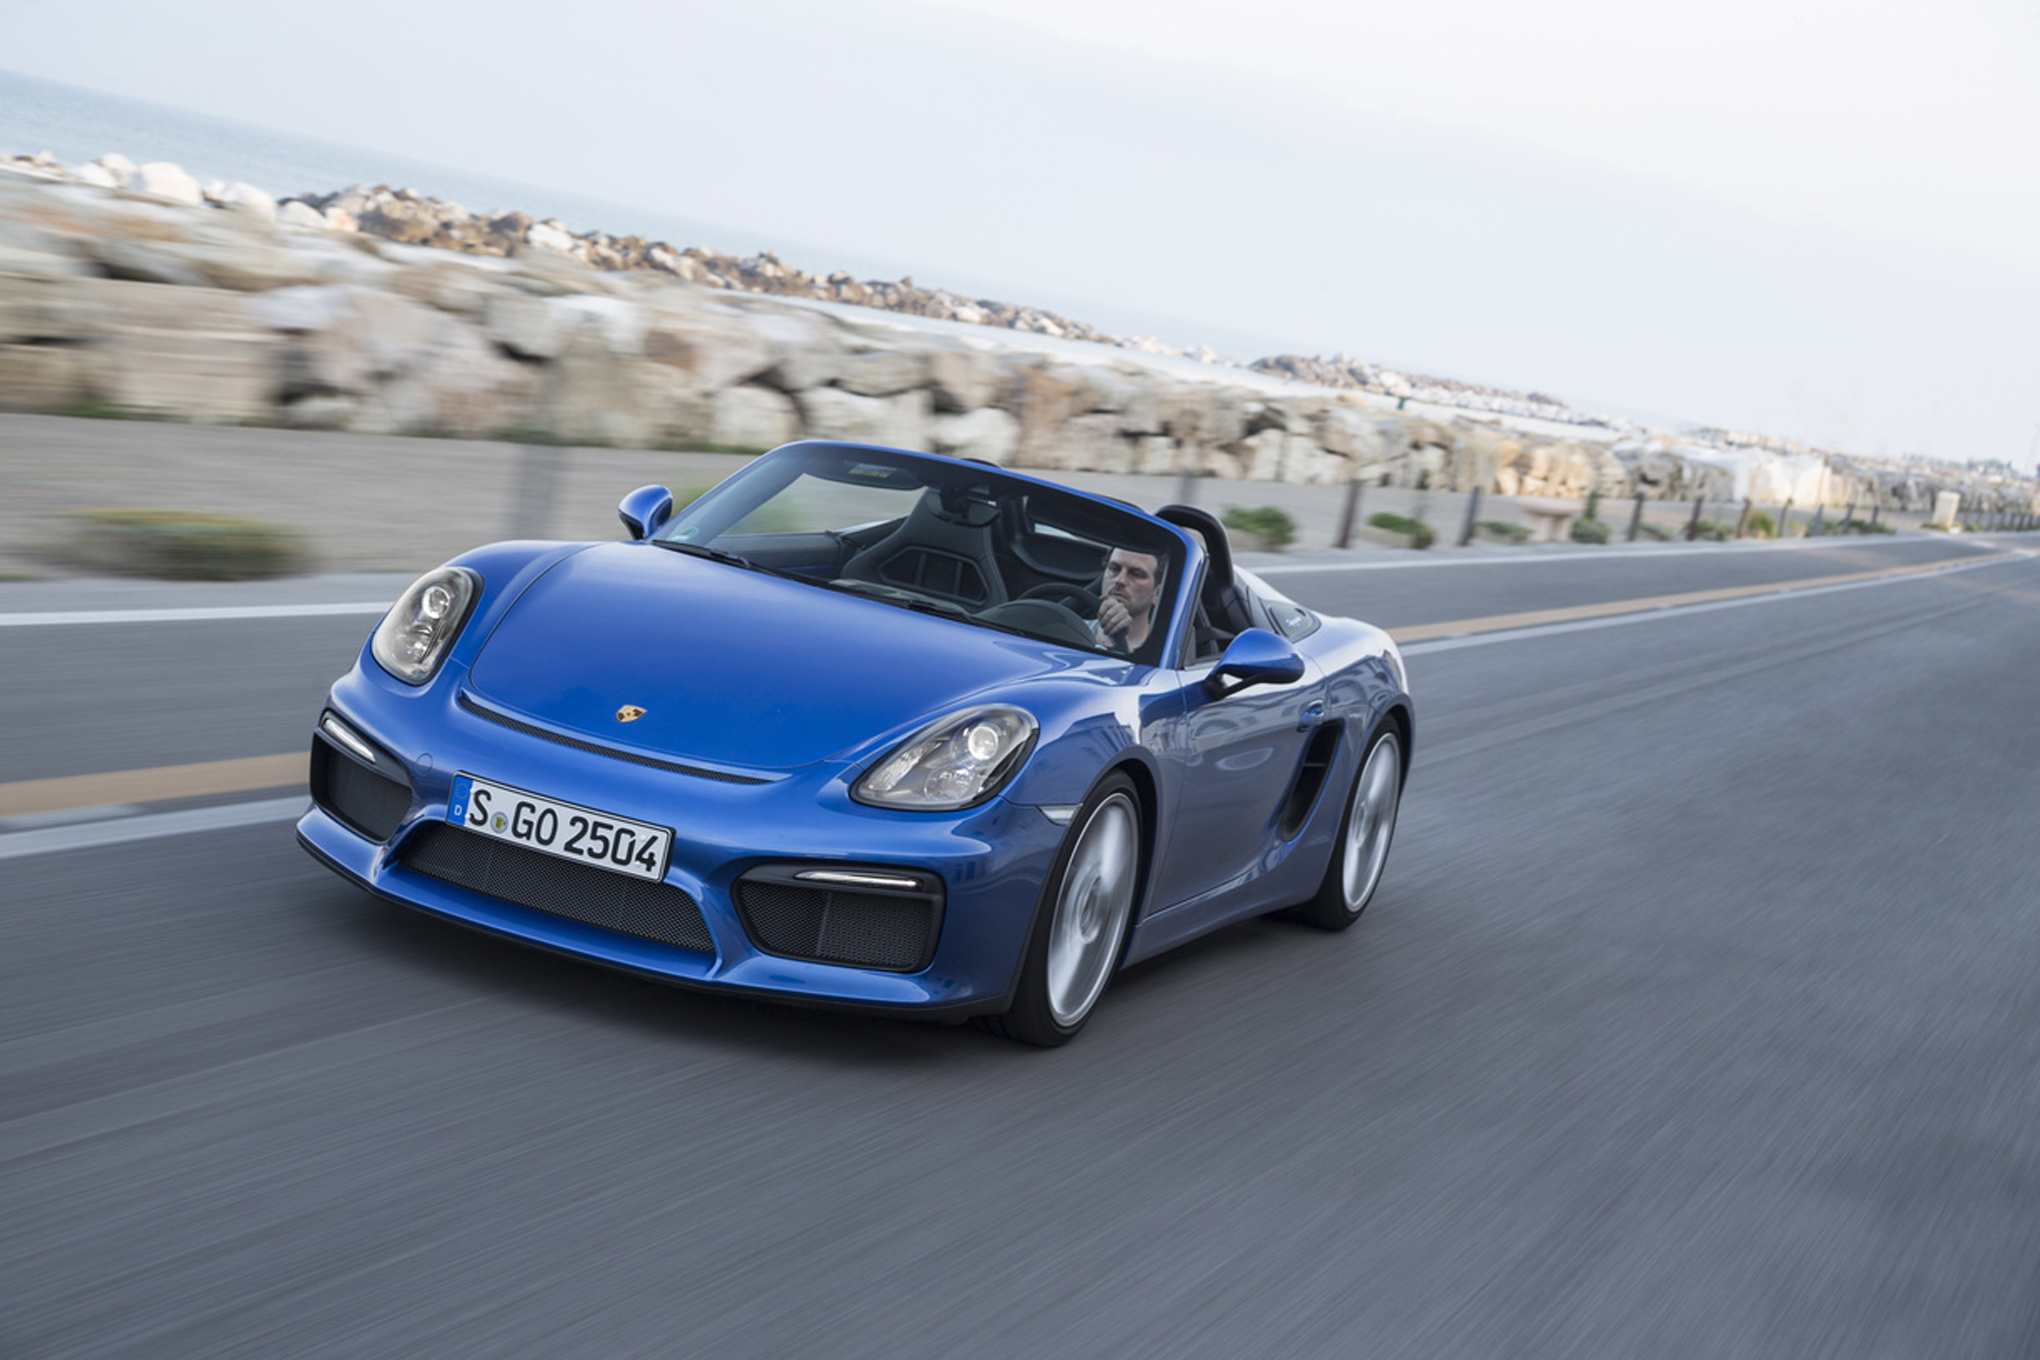 2017 Porsche Boxster Spyder photo - 2